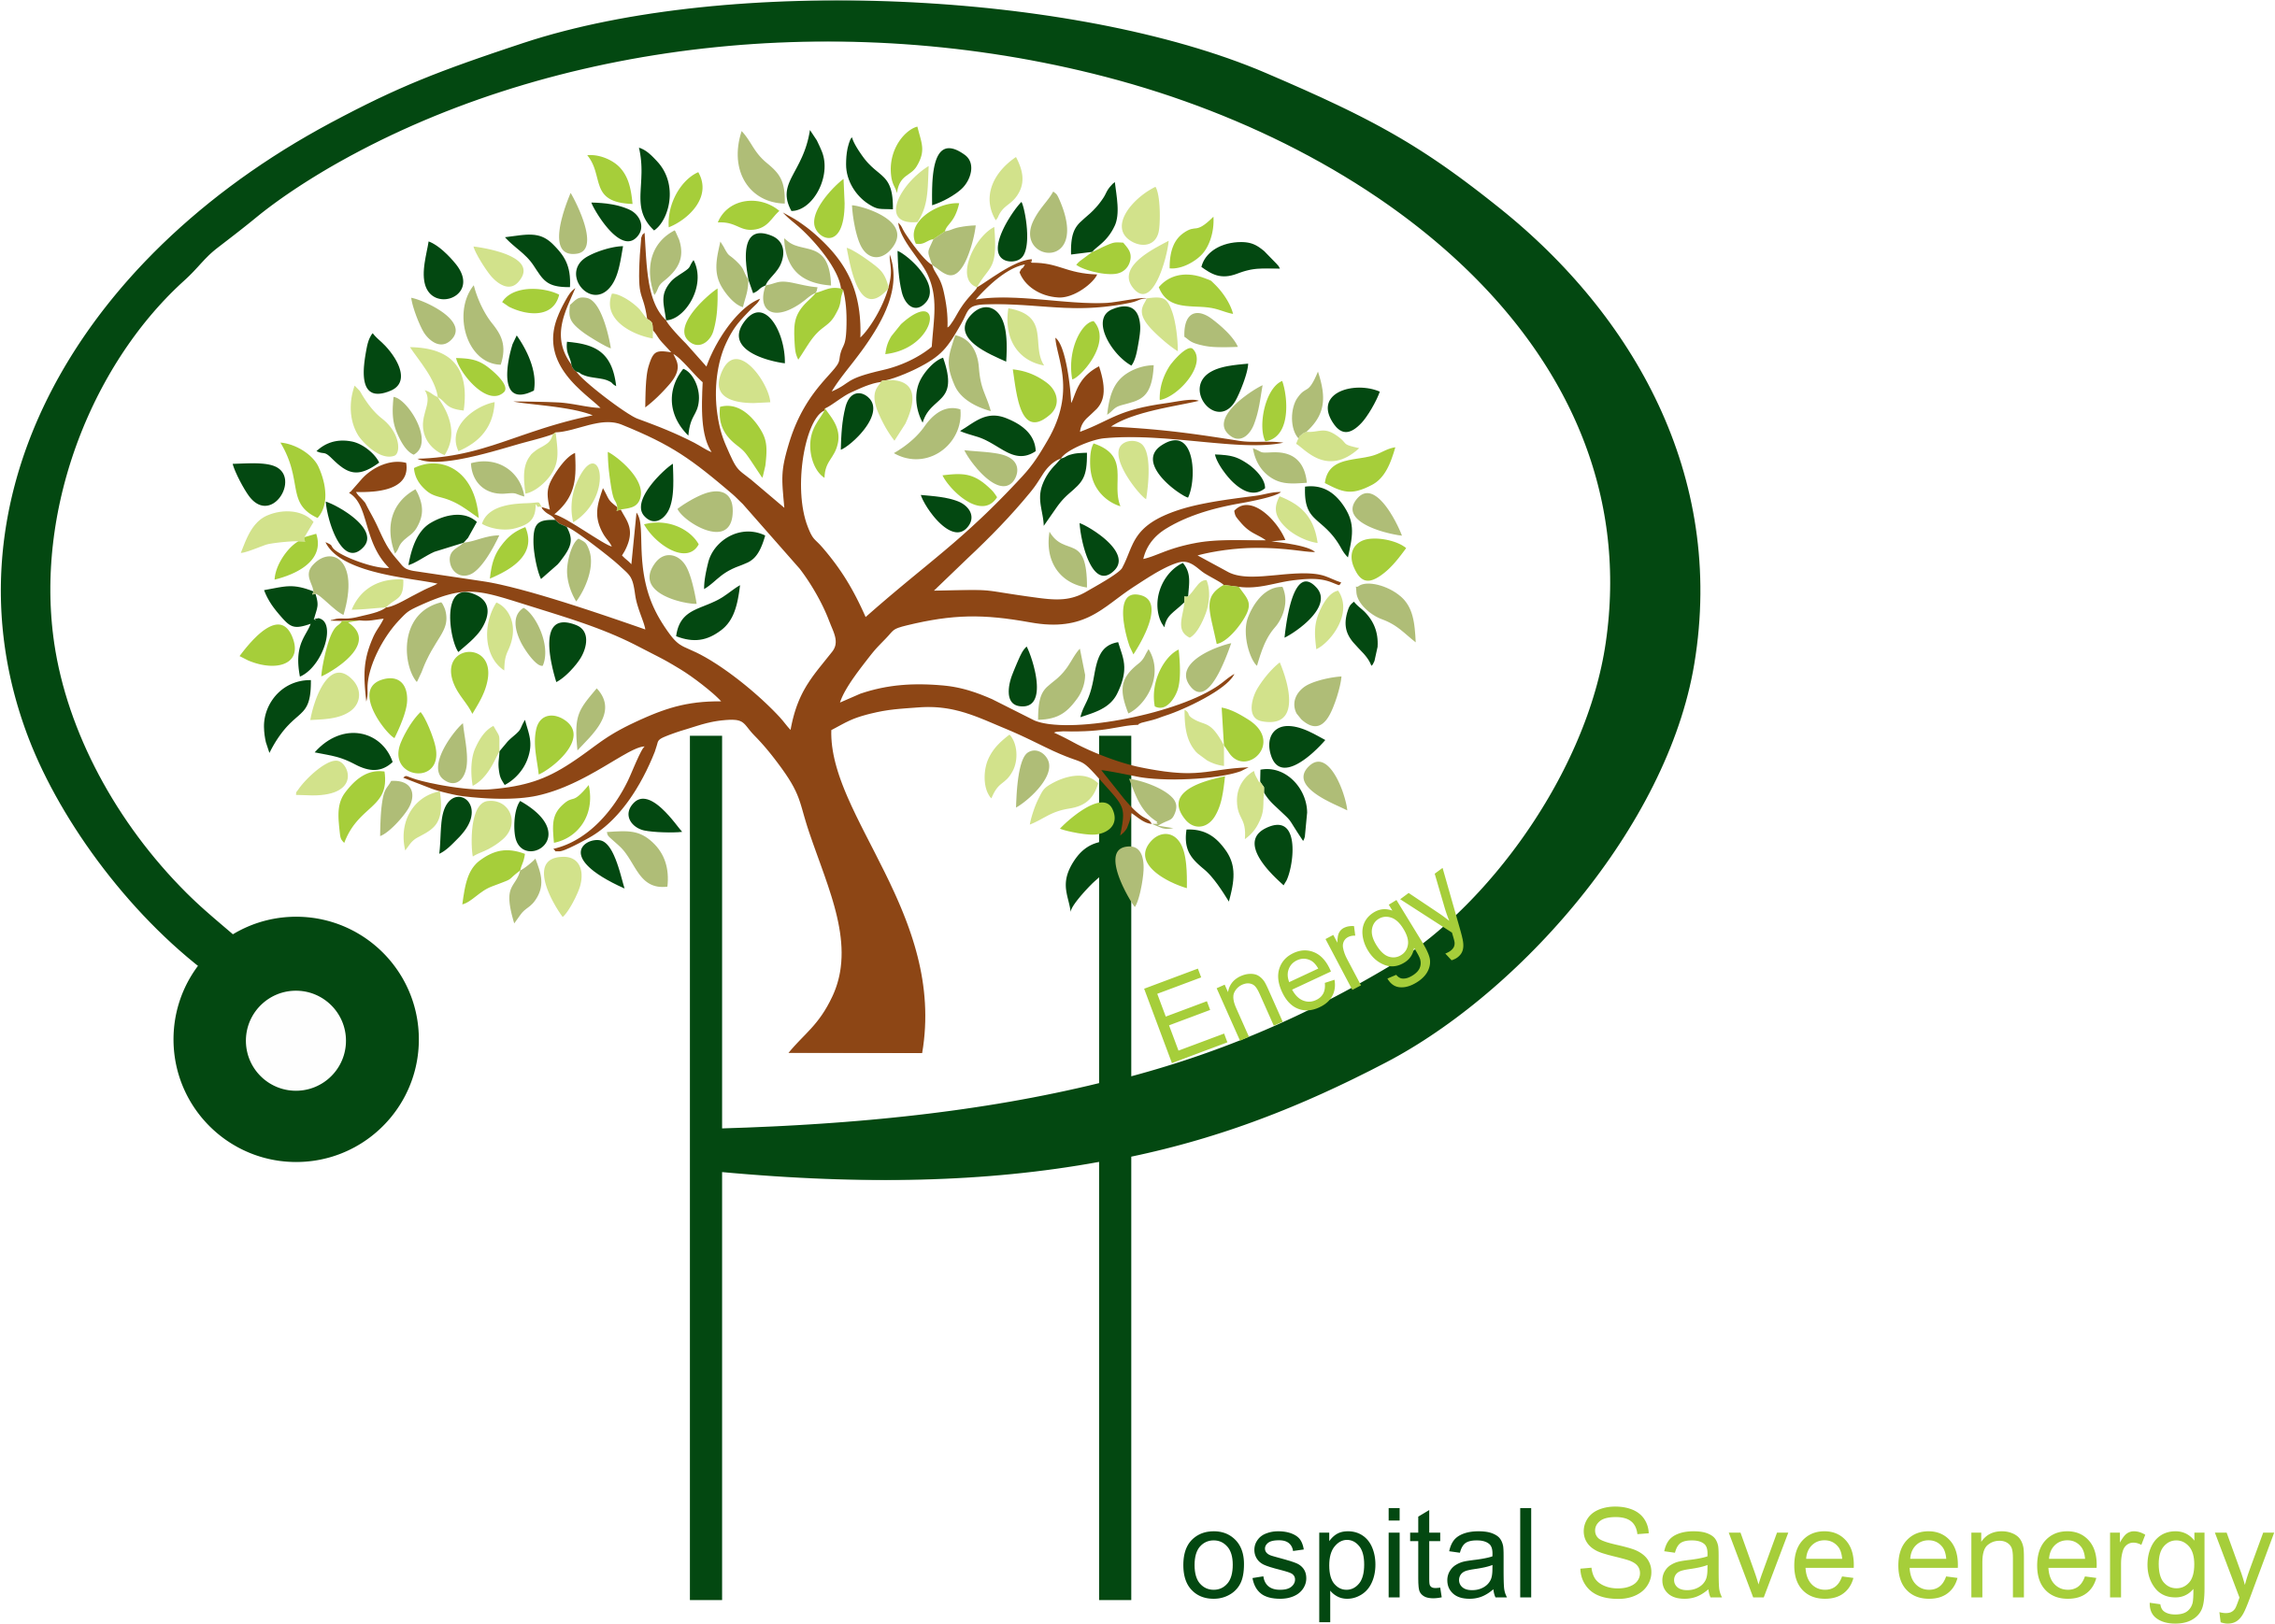 Energy clipart save. Project about hospital logo